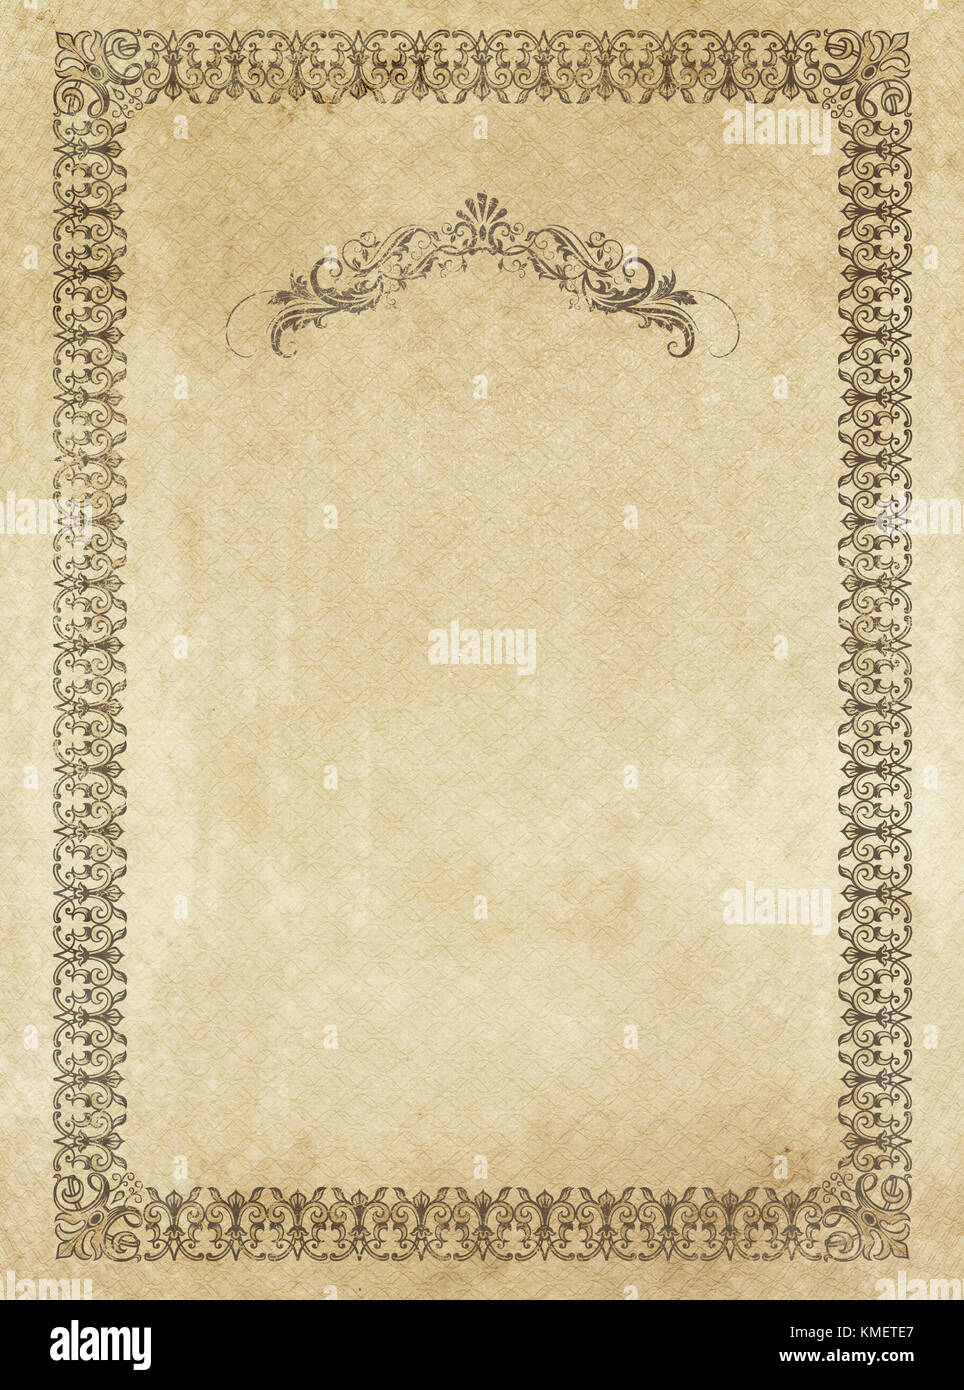 Old paper background with decorative vintage border. - Stock Image